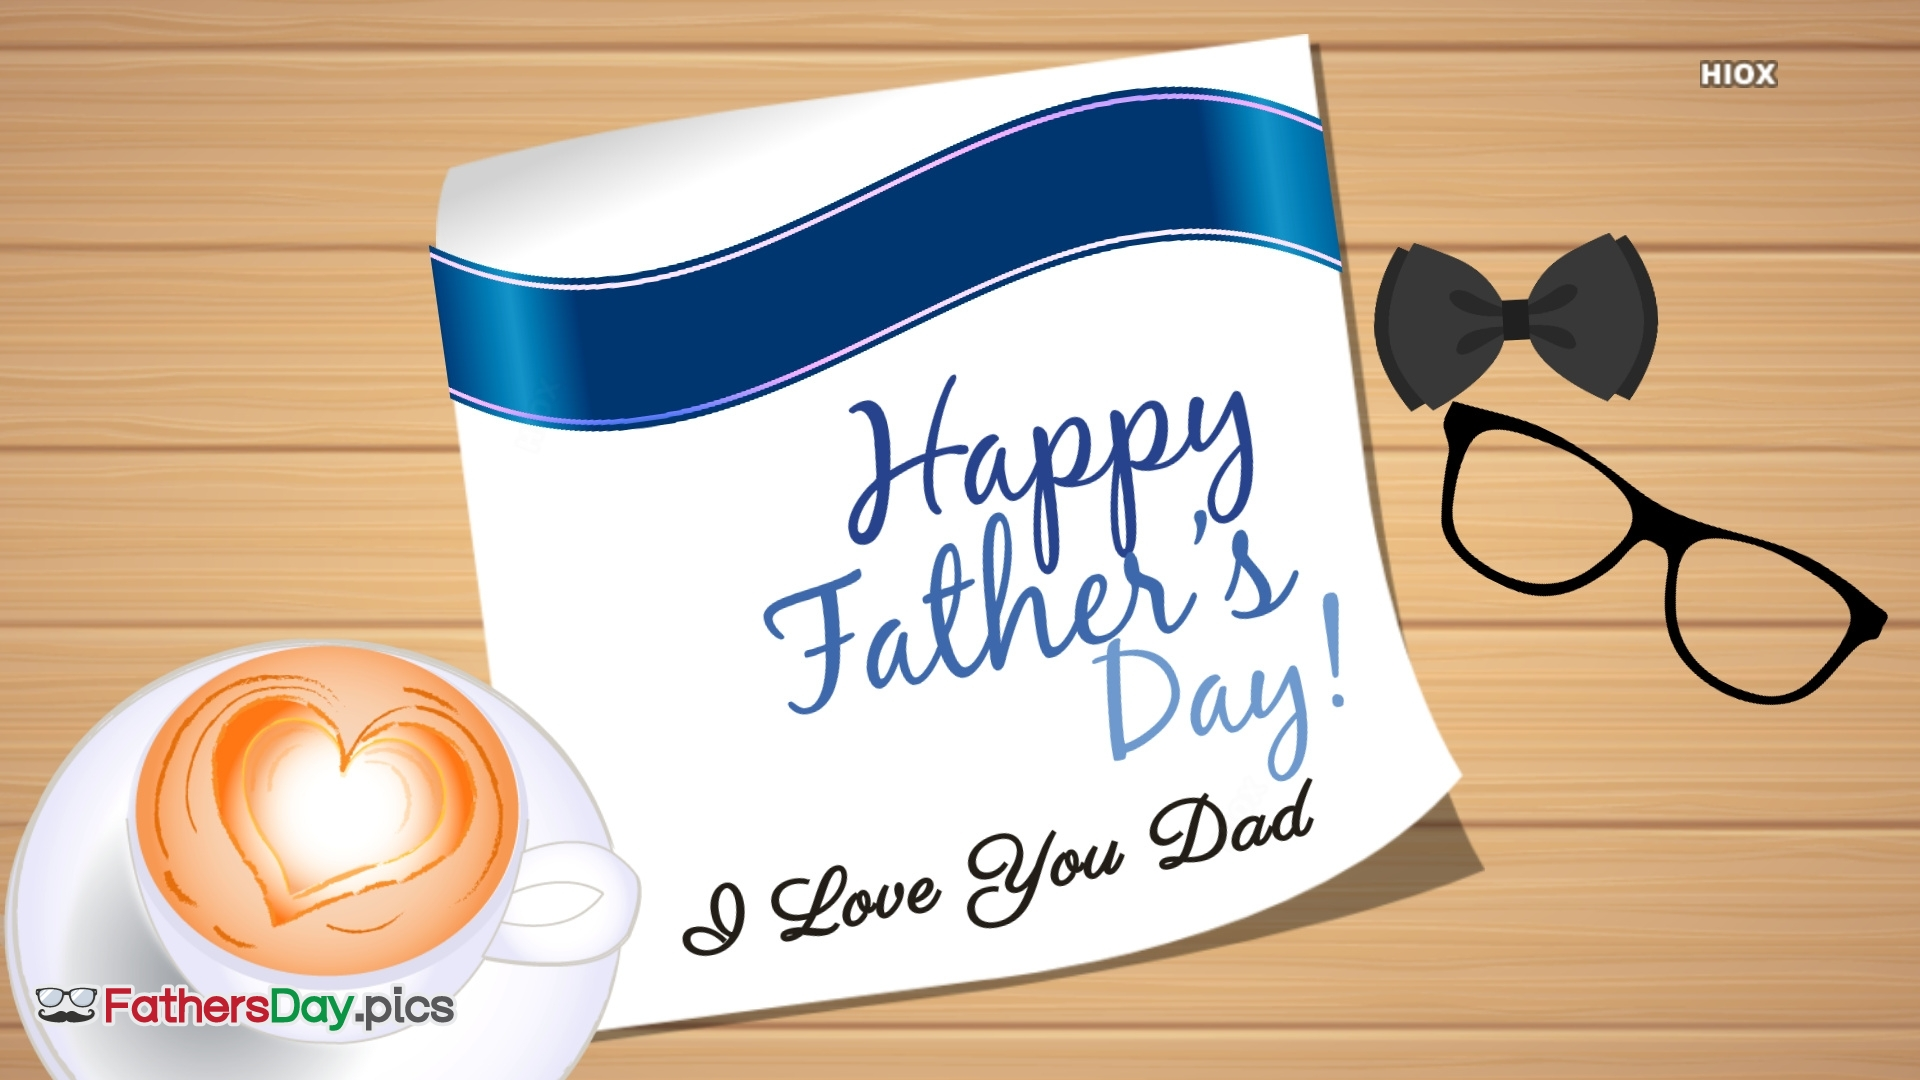 I Love You Dad. Happy Father